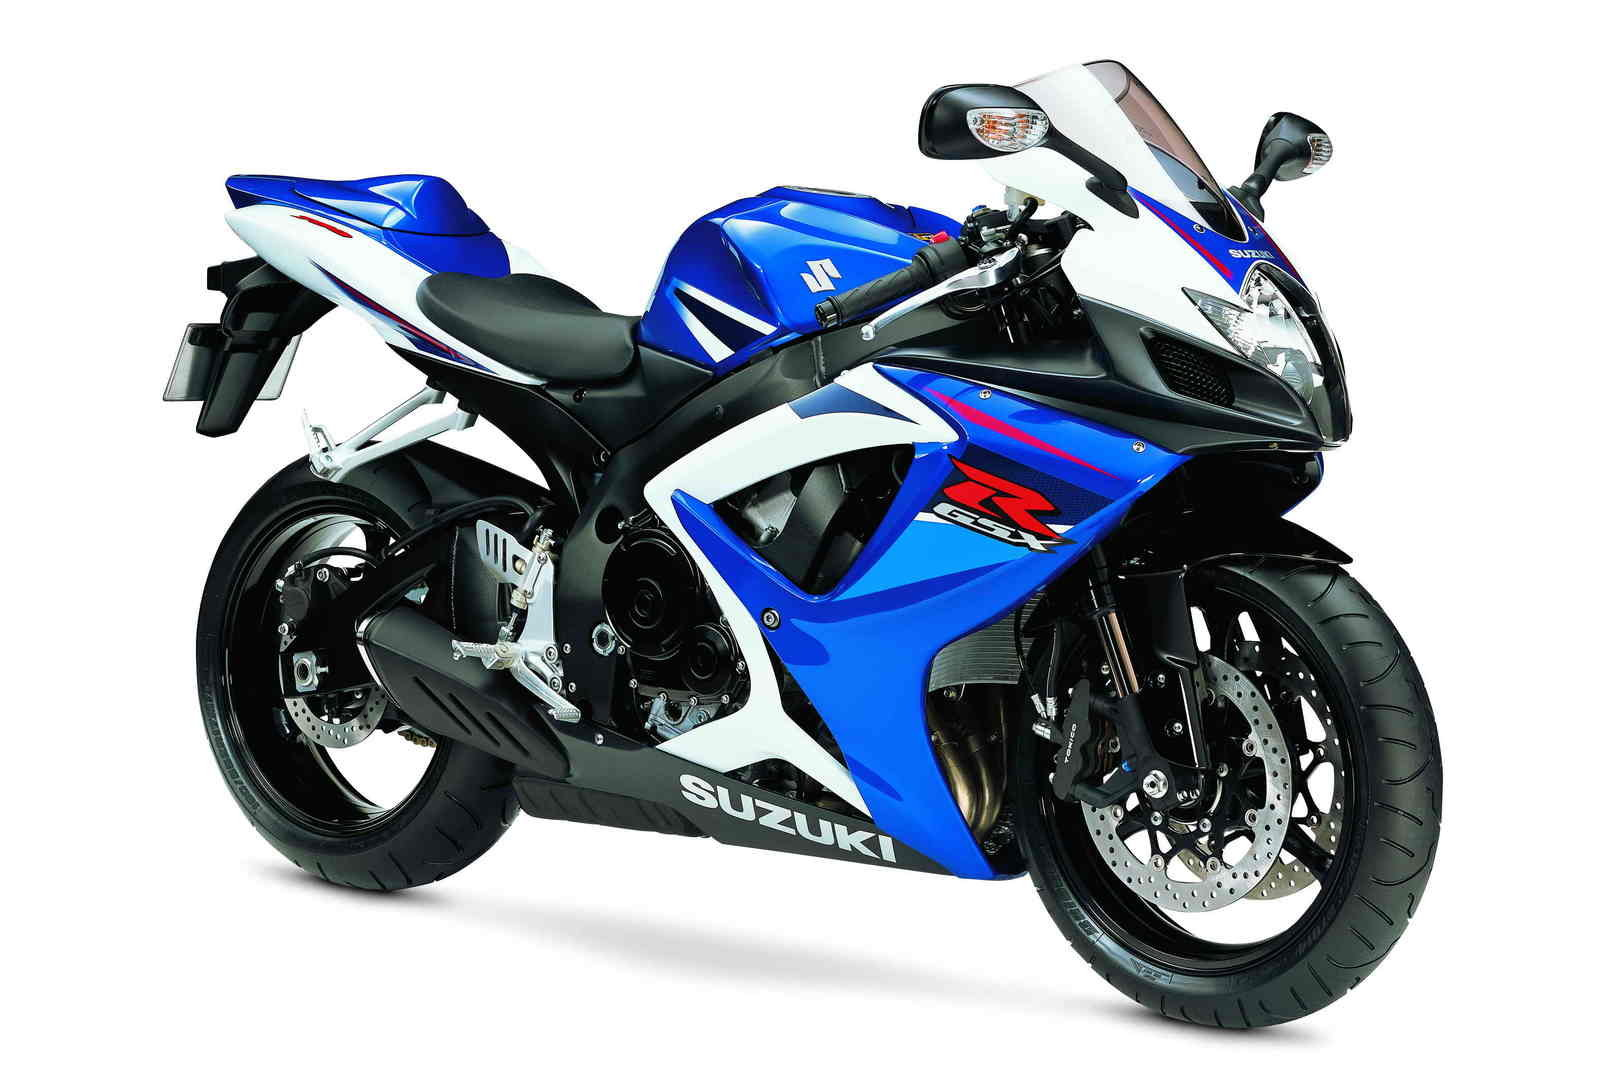 2007 suzuki gsx r750 review top speed. Black Bedroom Furniture Sets. Home Design Ideas